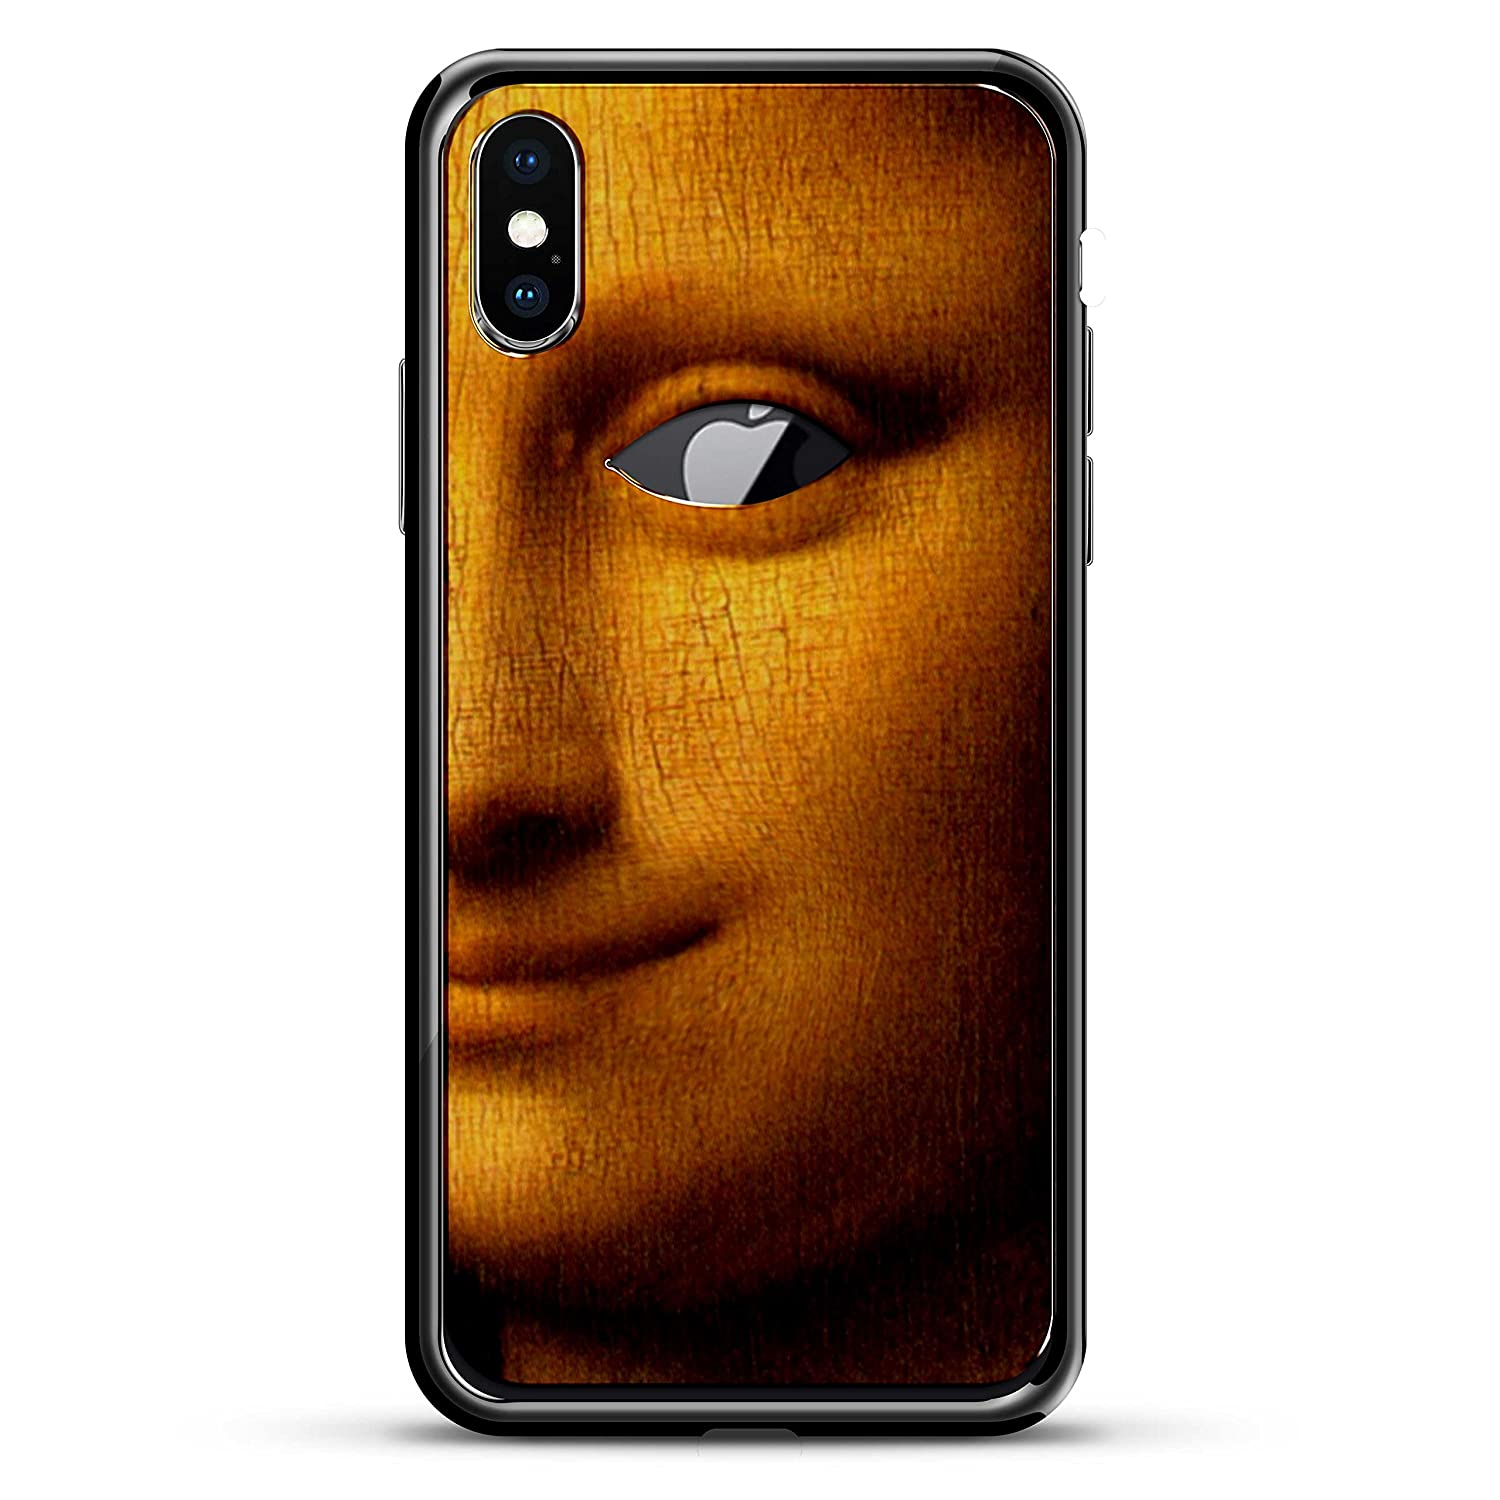 MONA LISA W/ EYE PAINTING | Luxendary Chrome Series designer case for iPhone X in Titanium Black trim